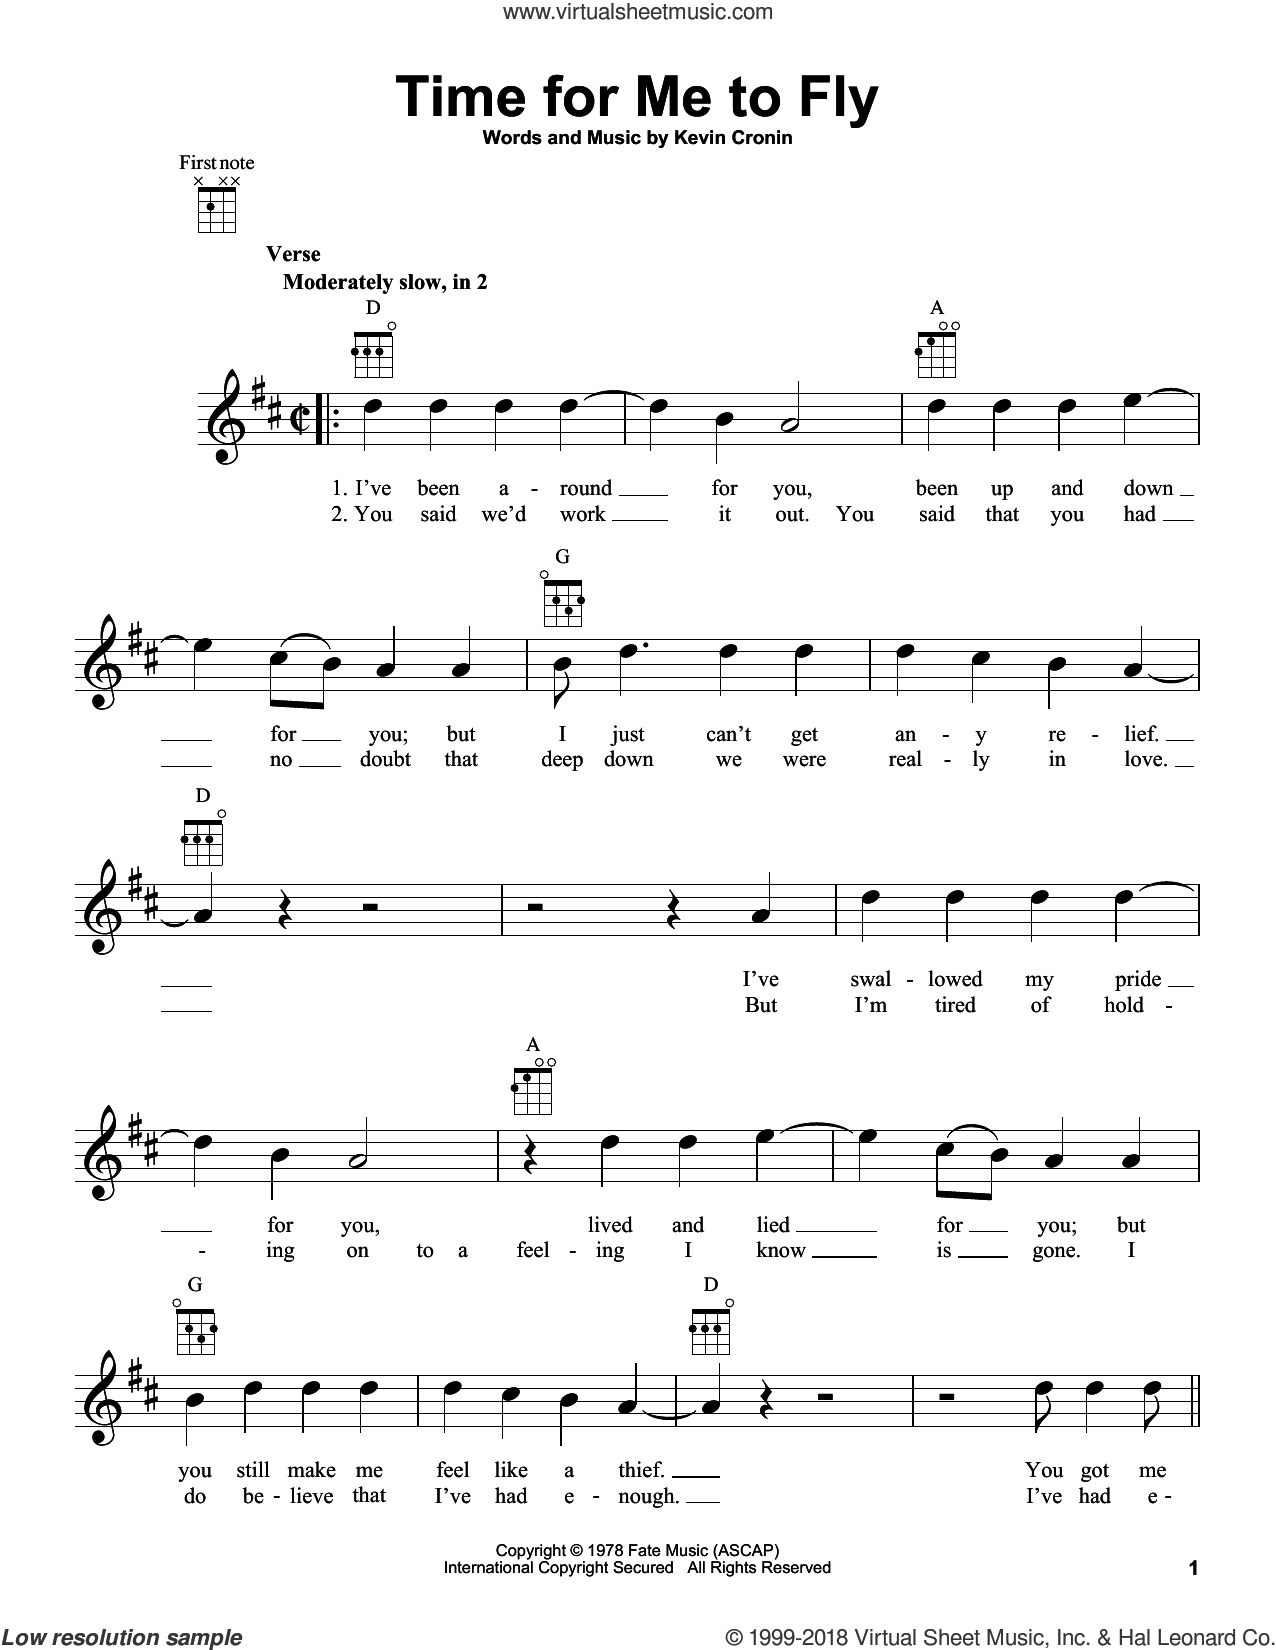 Time For Me To Fly sheet music for ukulele by REO Speedwagon and Kevin Cronin, intermediate skill level